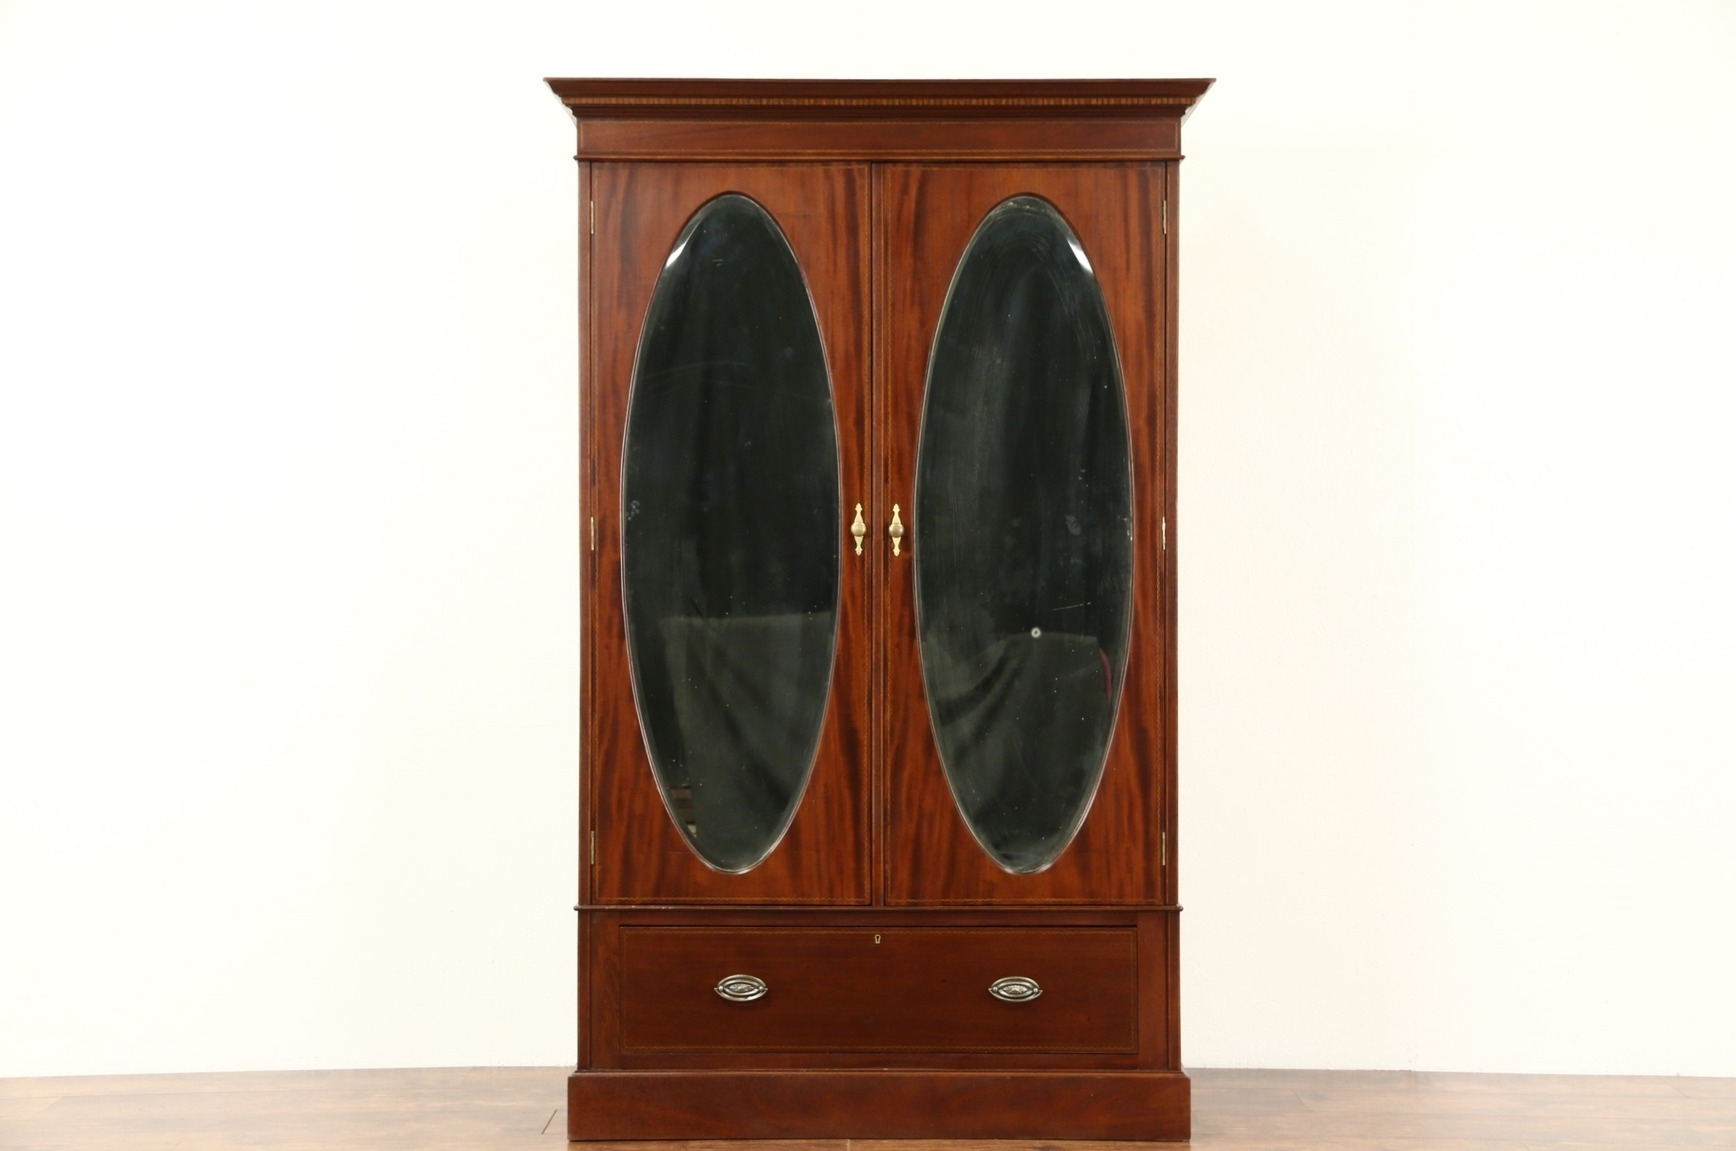 Sold – English 1910 Antique Armoire Or Wardrobe Closet, Oval Inside Recent Armoire French Wardrobes (View 14 of 15)